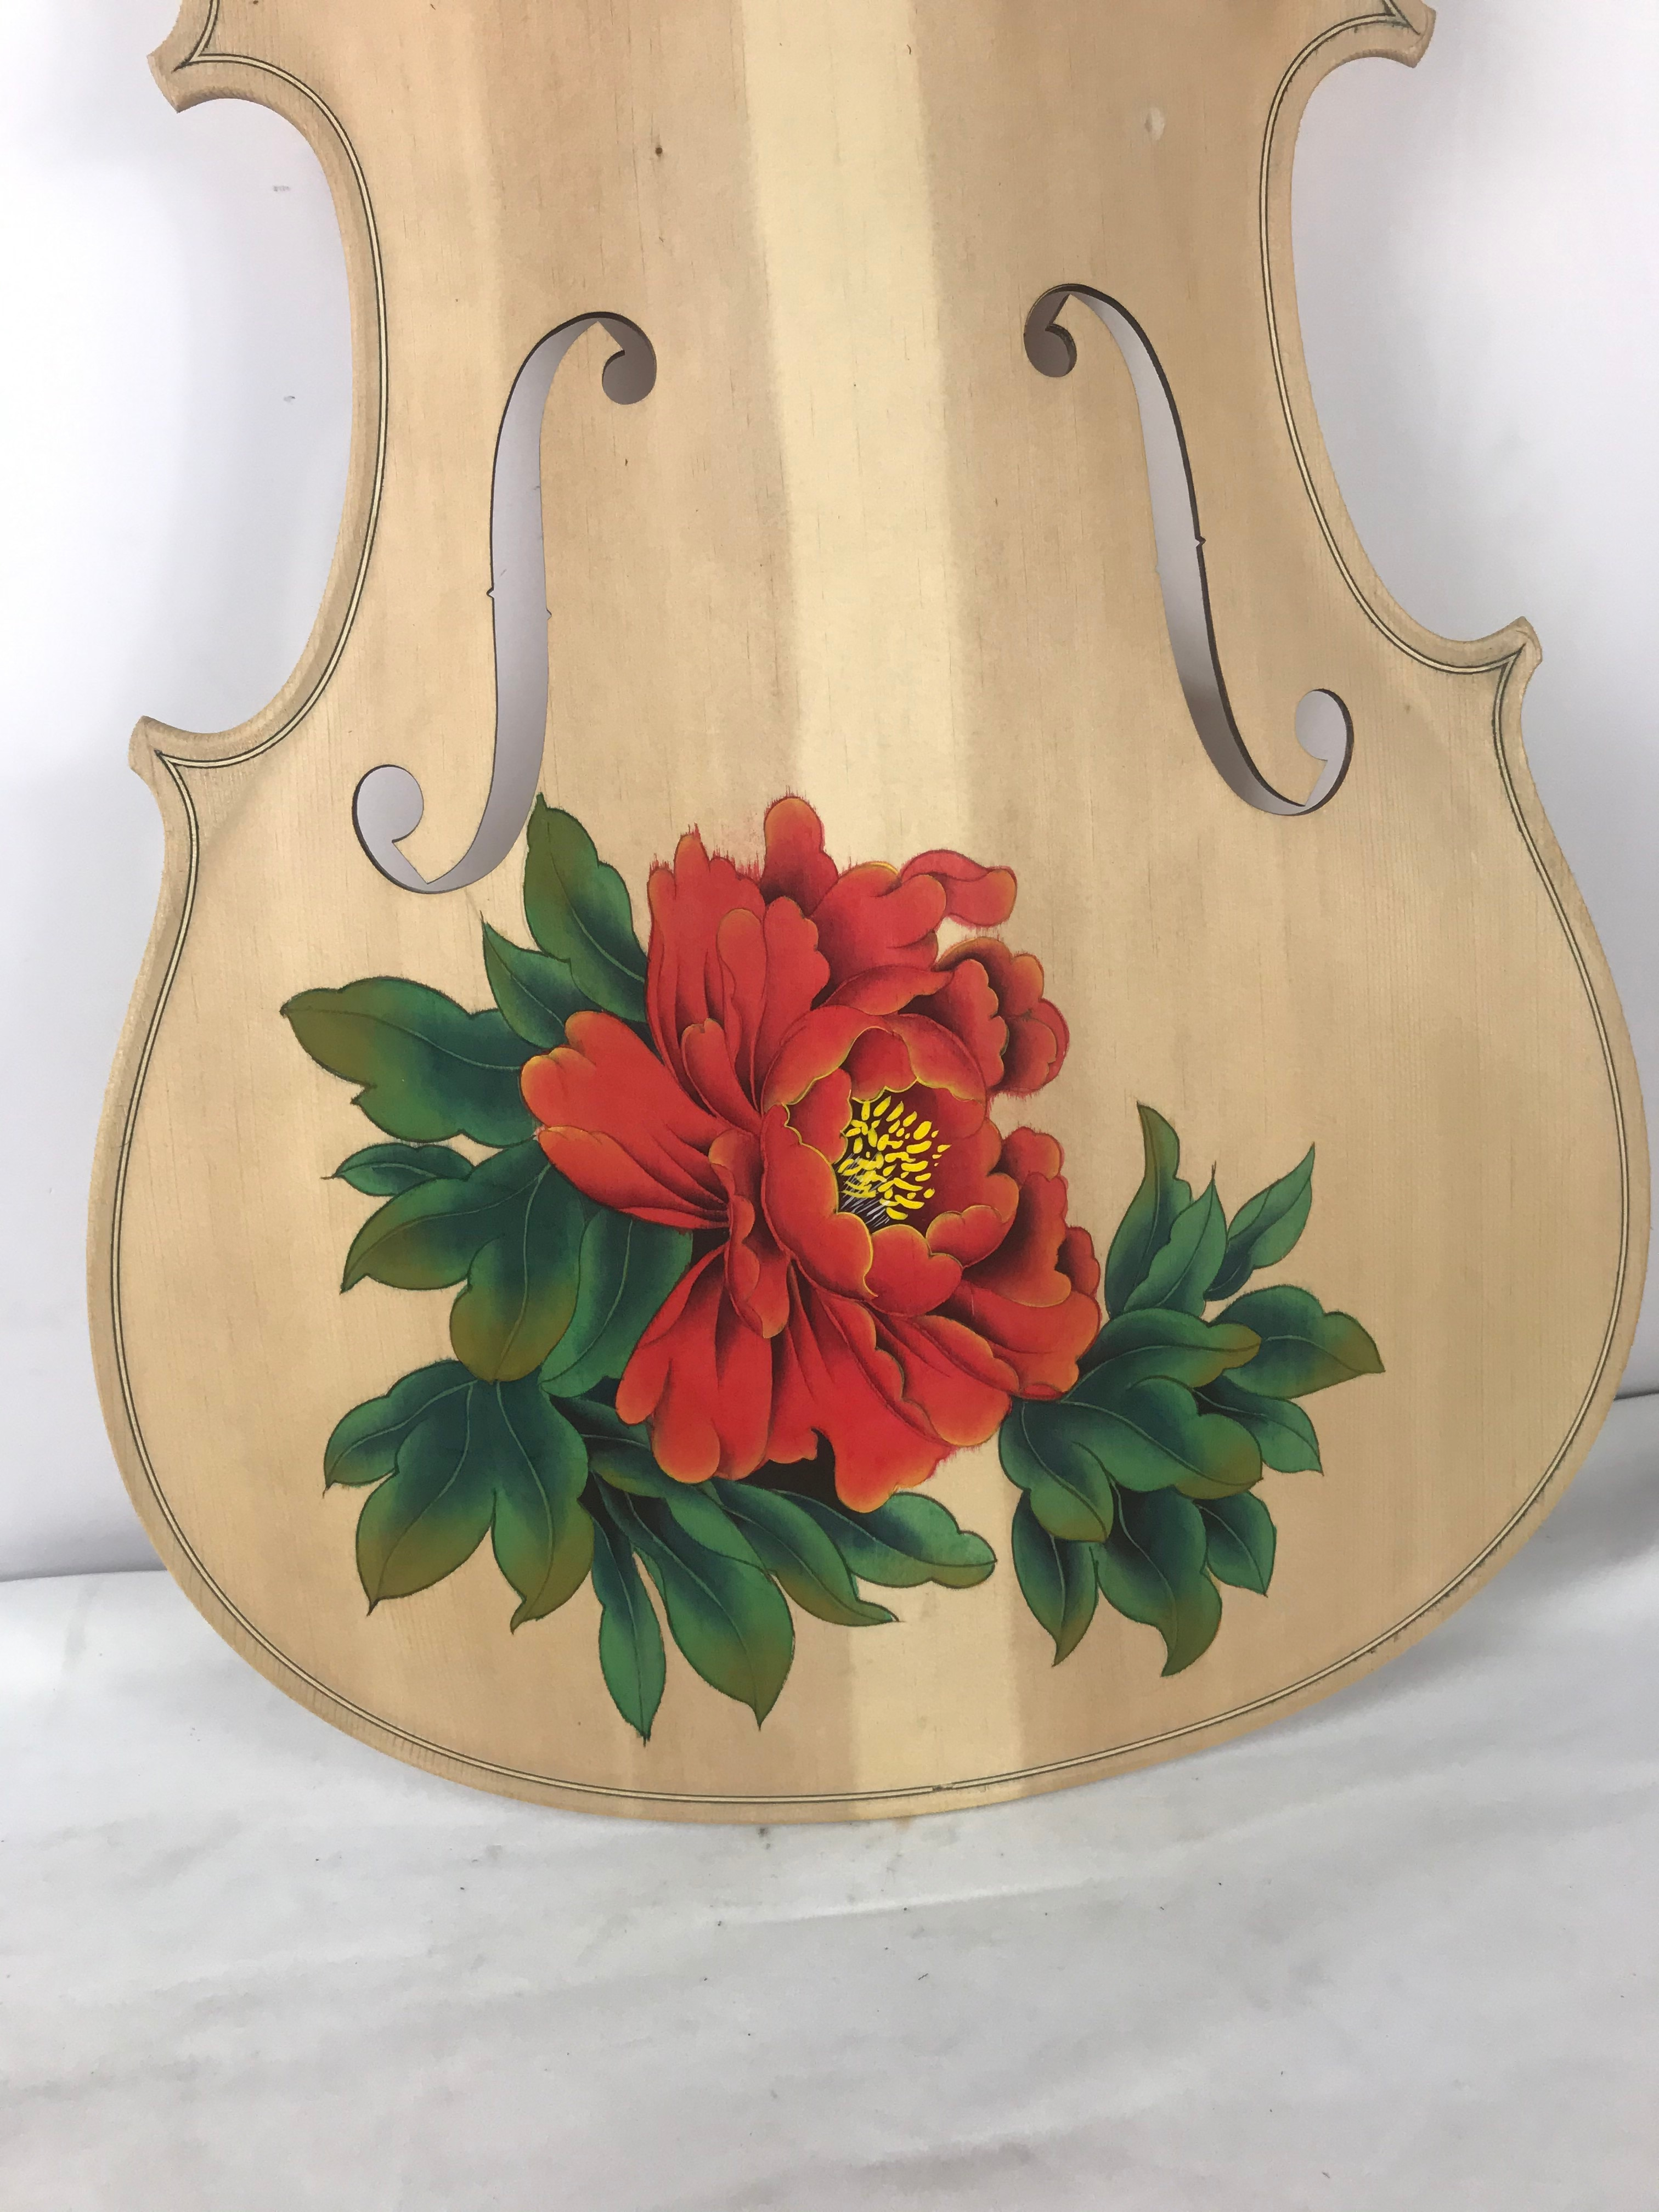 Traditonal Chinese Realistic Painting 1/4 Cello Panel Hand Painting on Spruce Wood Art Drawing on Cello enlarge